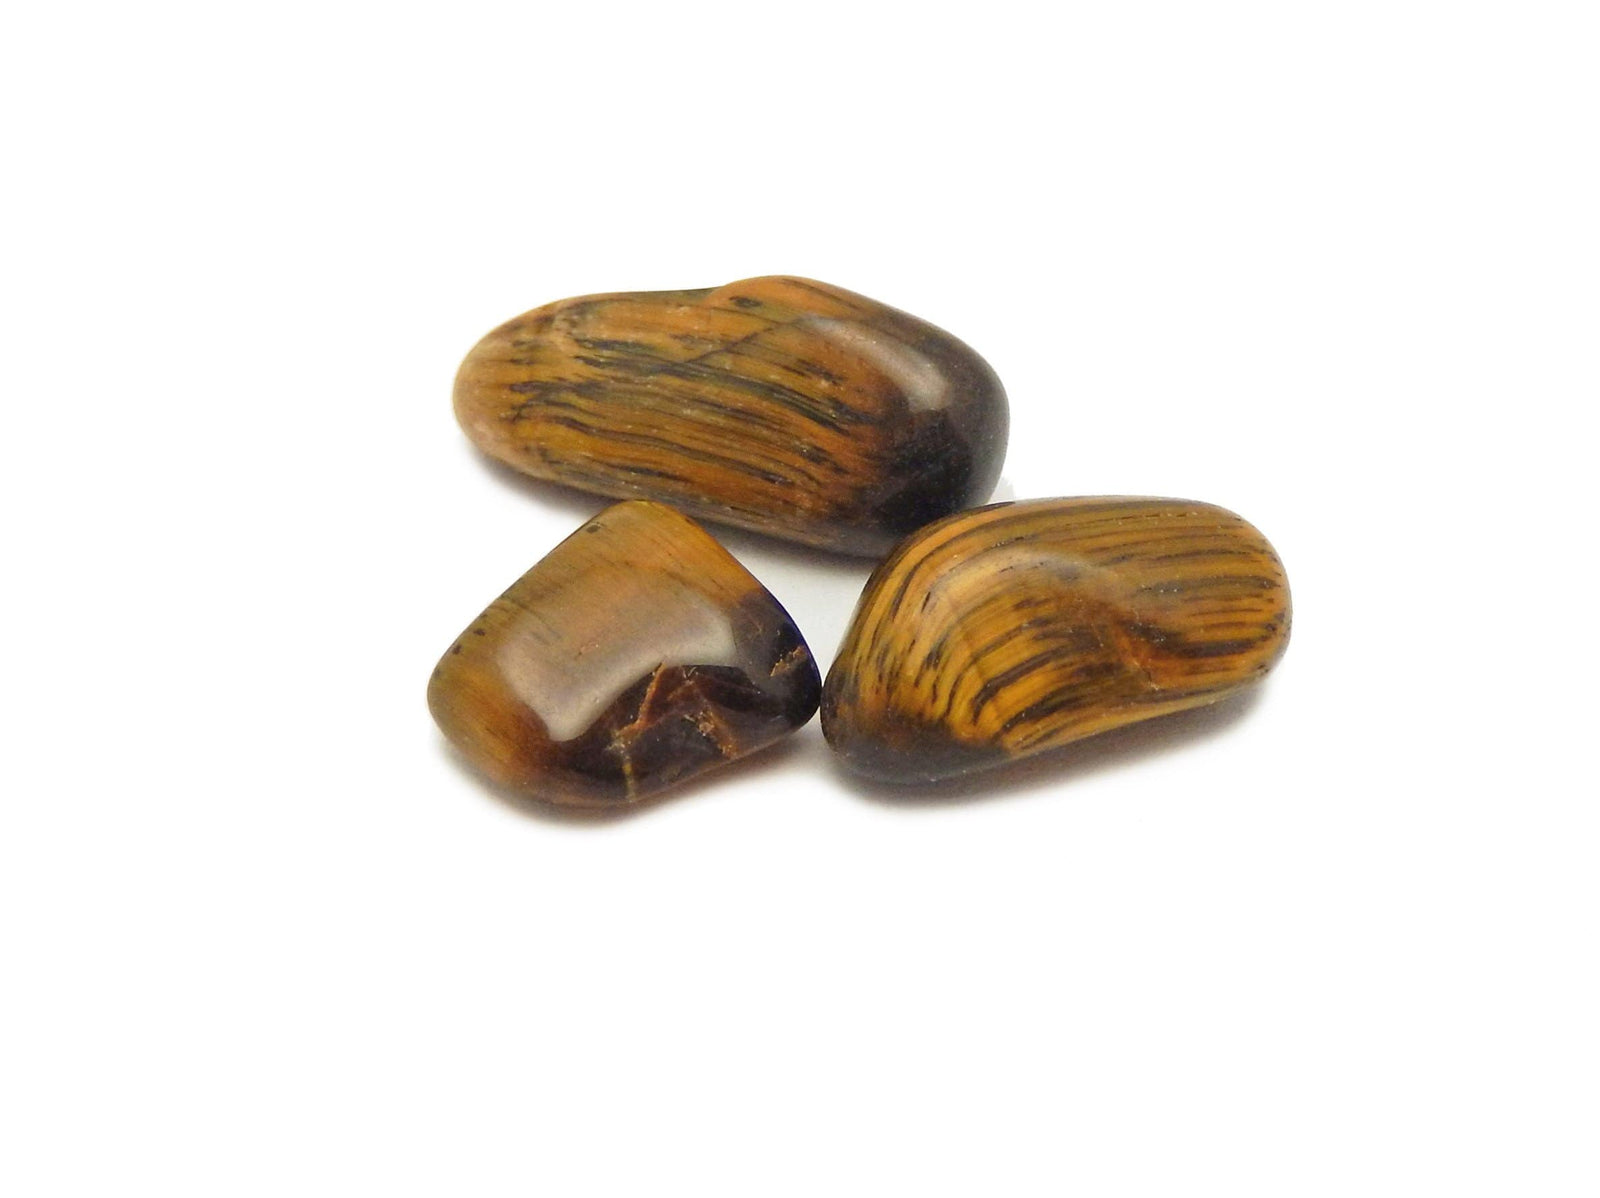 Tumbled Stones - 1 Lb Bag Tiger Eye Chips  Small Tumbled Stones - Choose 1,3,5 Bags (TS-09)